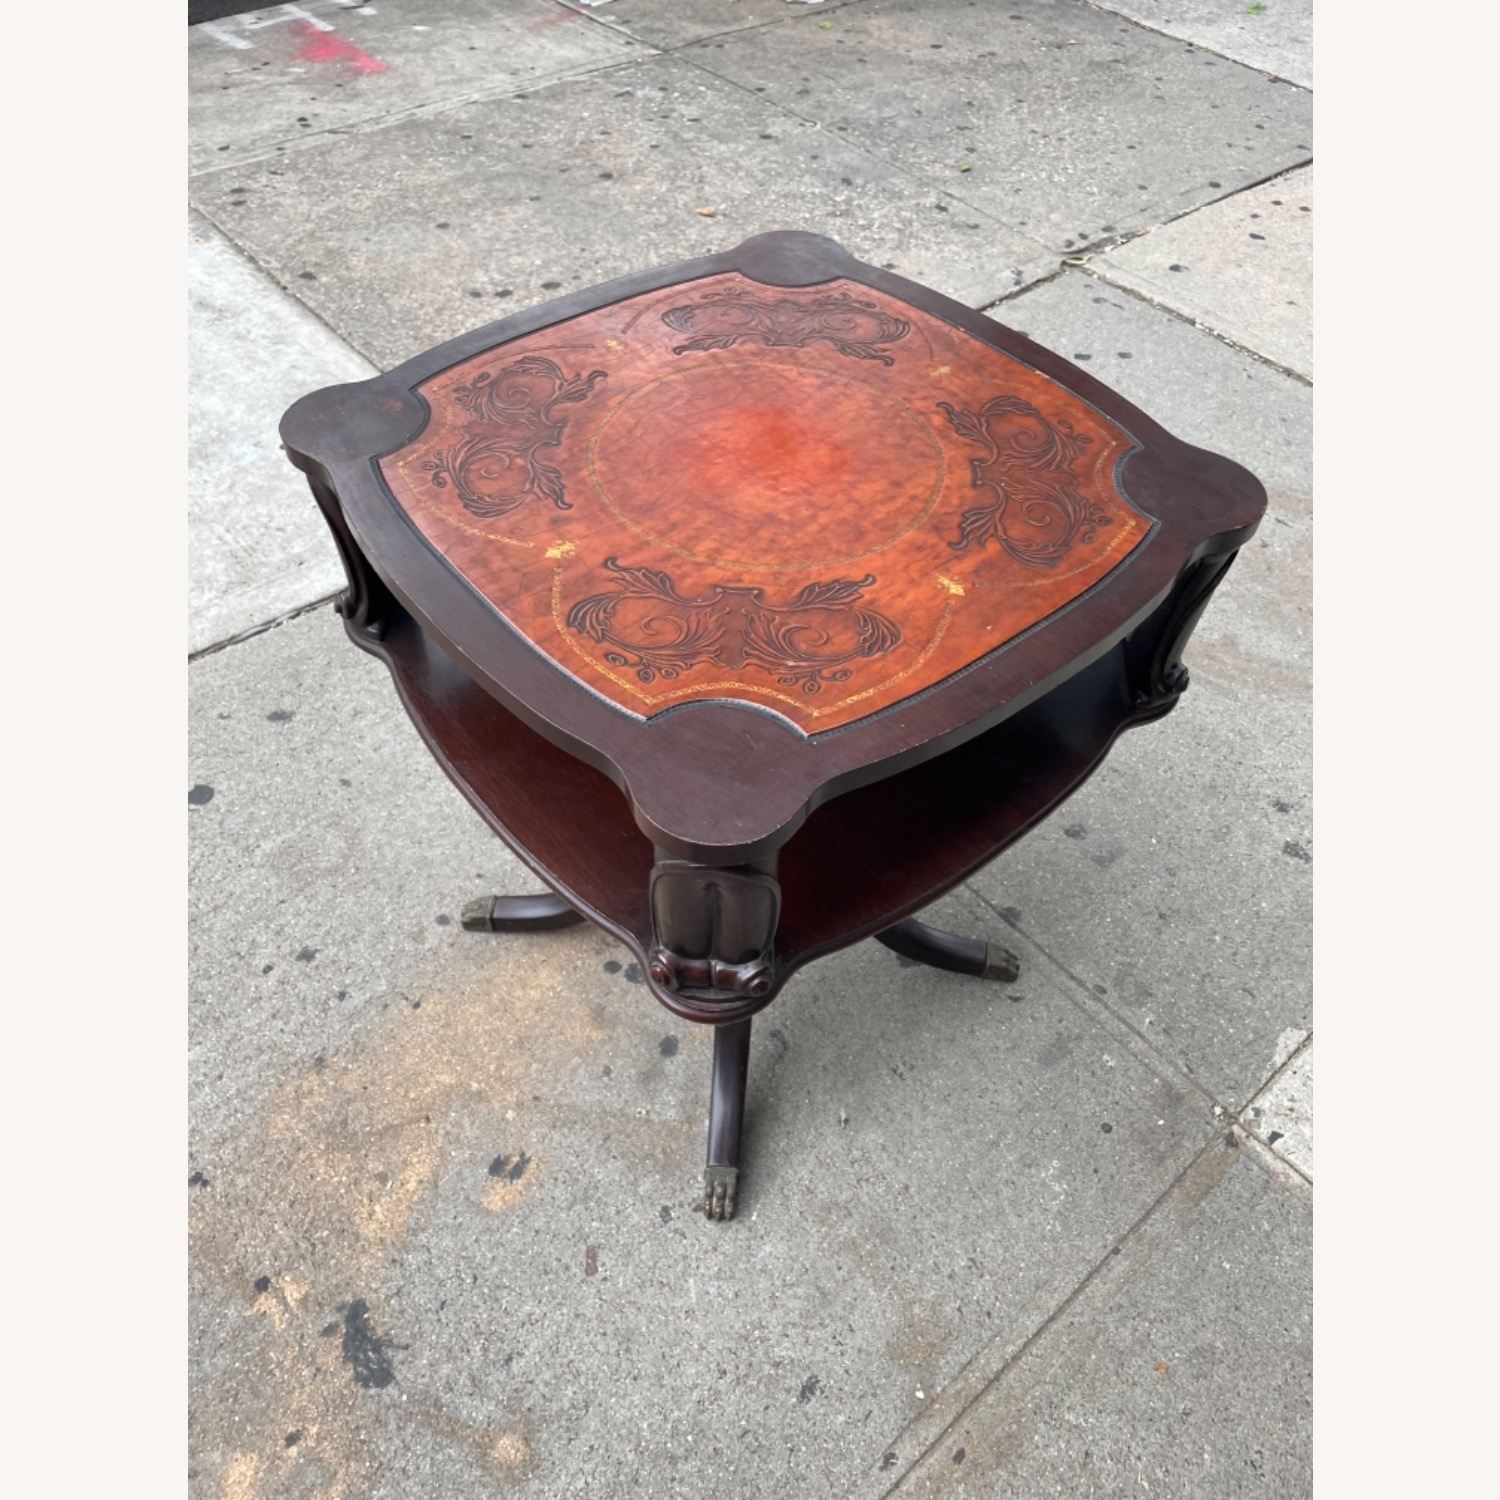 Adams Always 1930s Decorative Leather Top Table - image-18